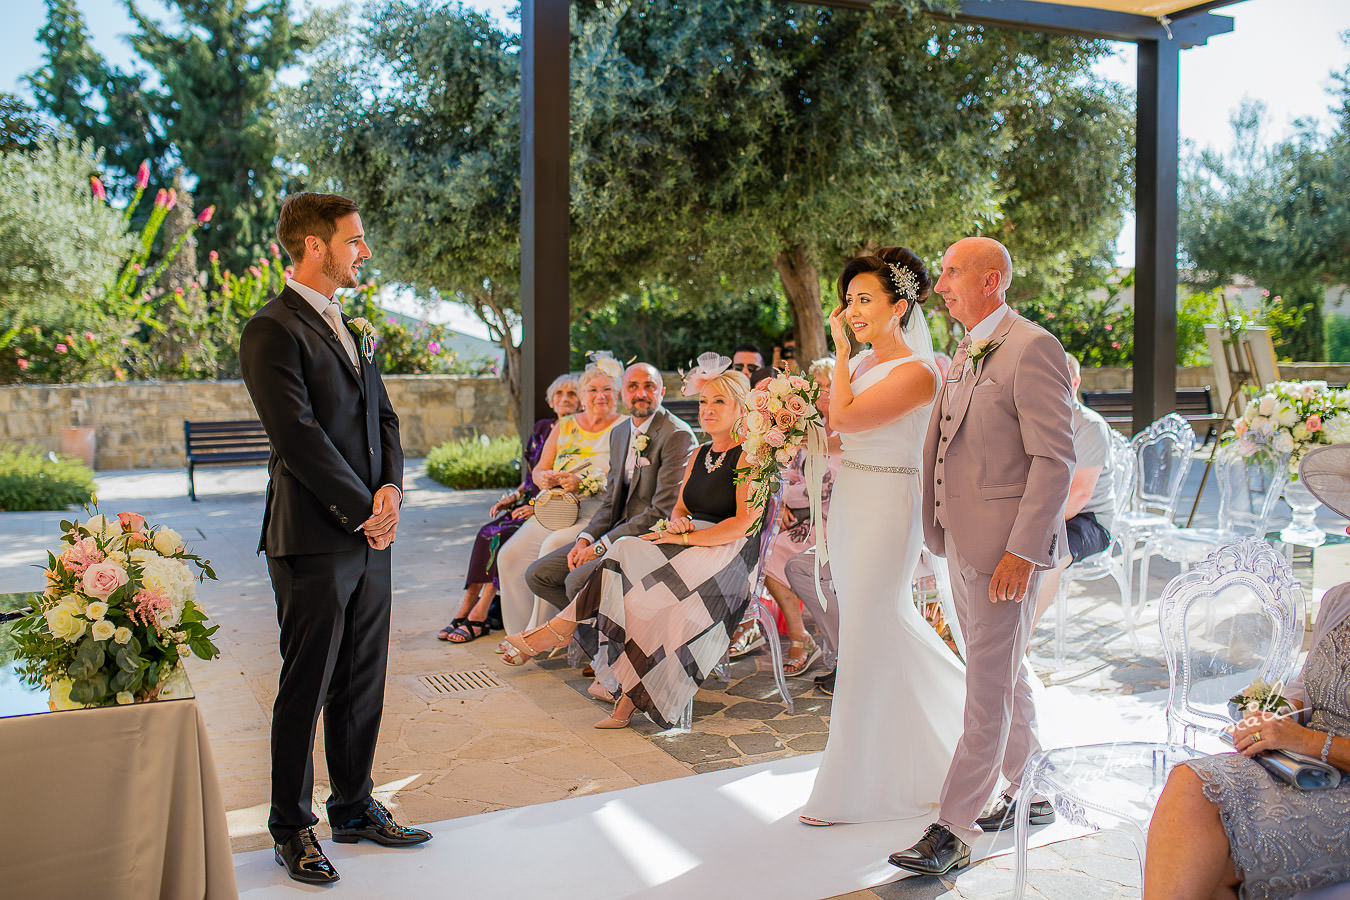 Emotional moments captured by Cristian Dascalu during an elegant Aphrodite Hills Wedding in Cyprus.